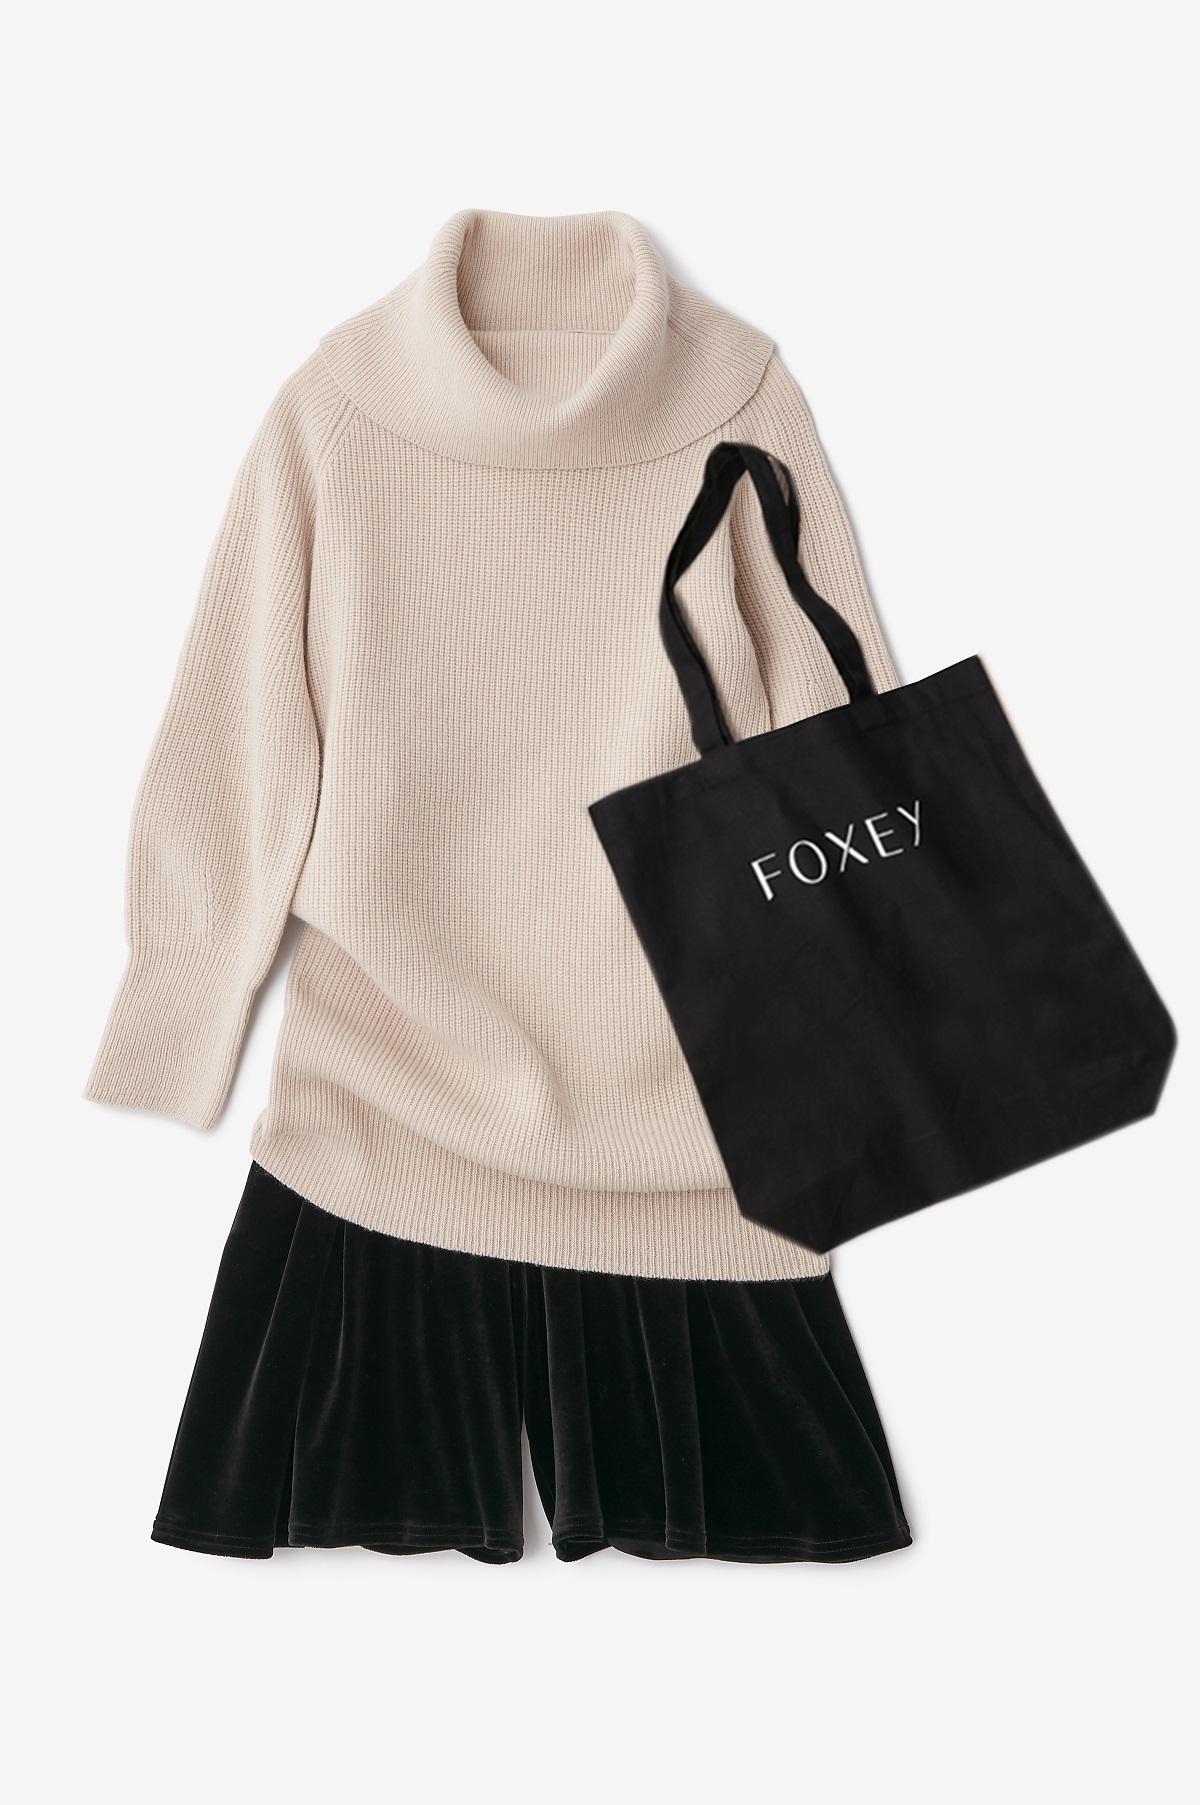 FOXEY チャリティニット for ニットファクトリーを発売 _1_1